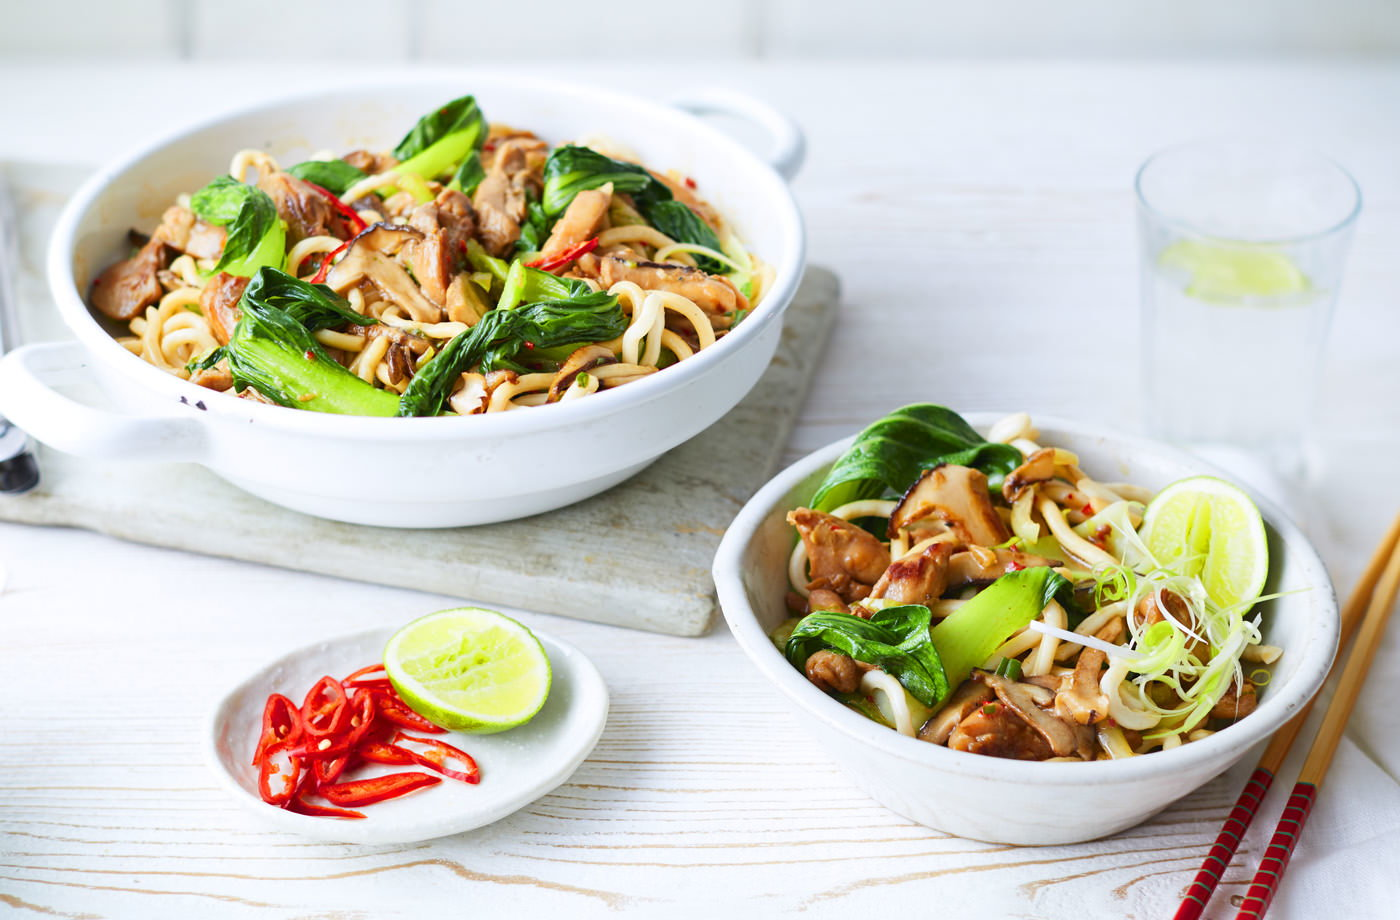 Shanghai noodles recipe